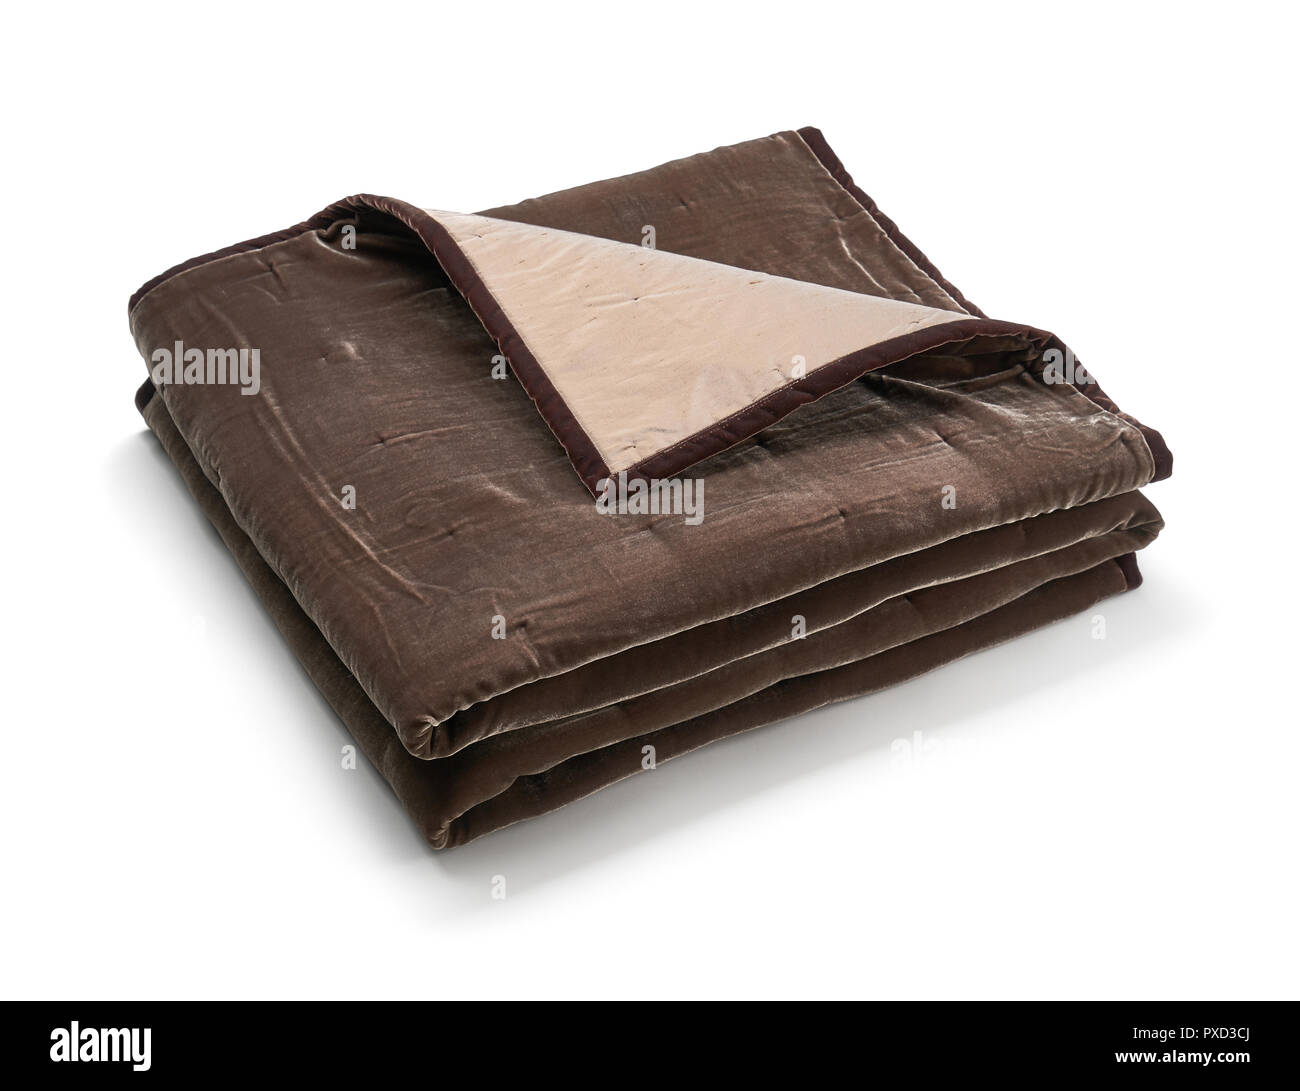 Brown blanket made of velor fabric, neatly folded, isolated on white background Stock Photo